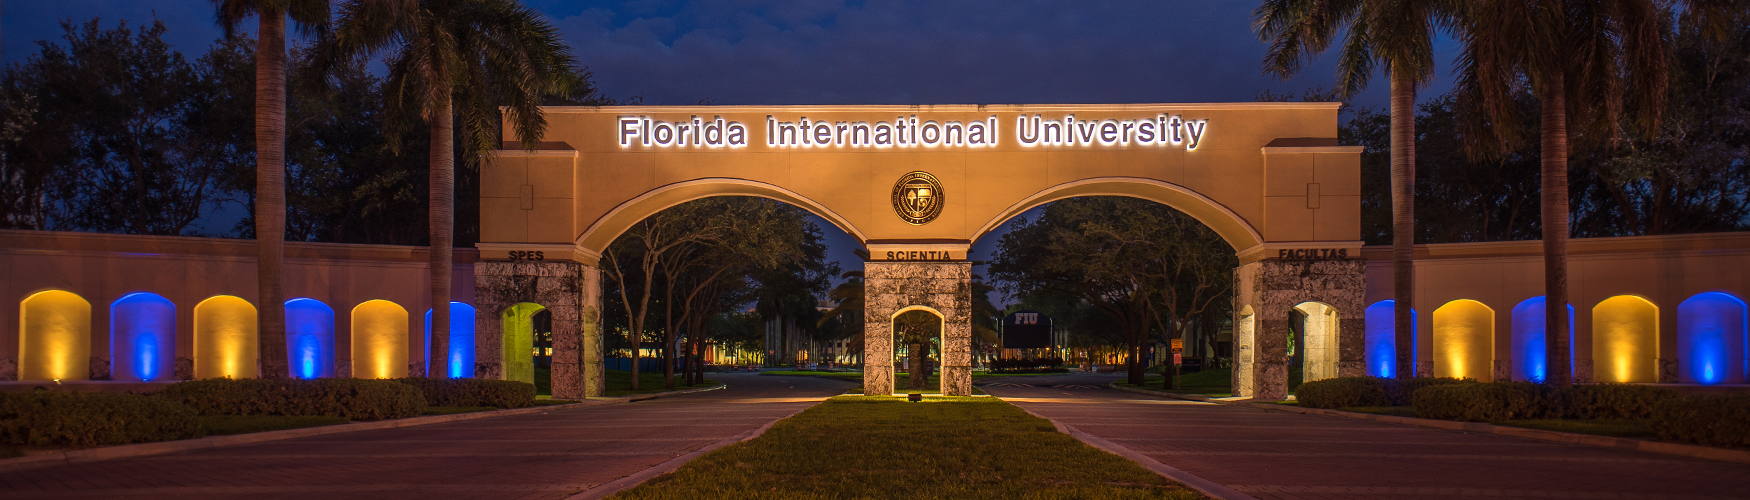 FIU arches entrance night